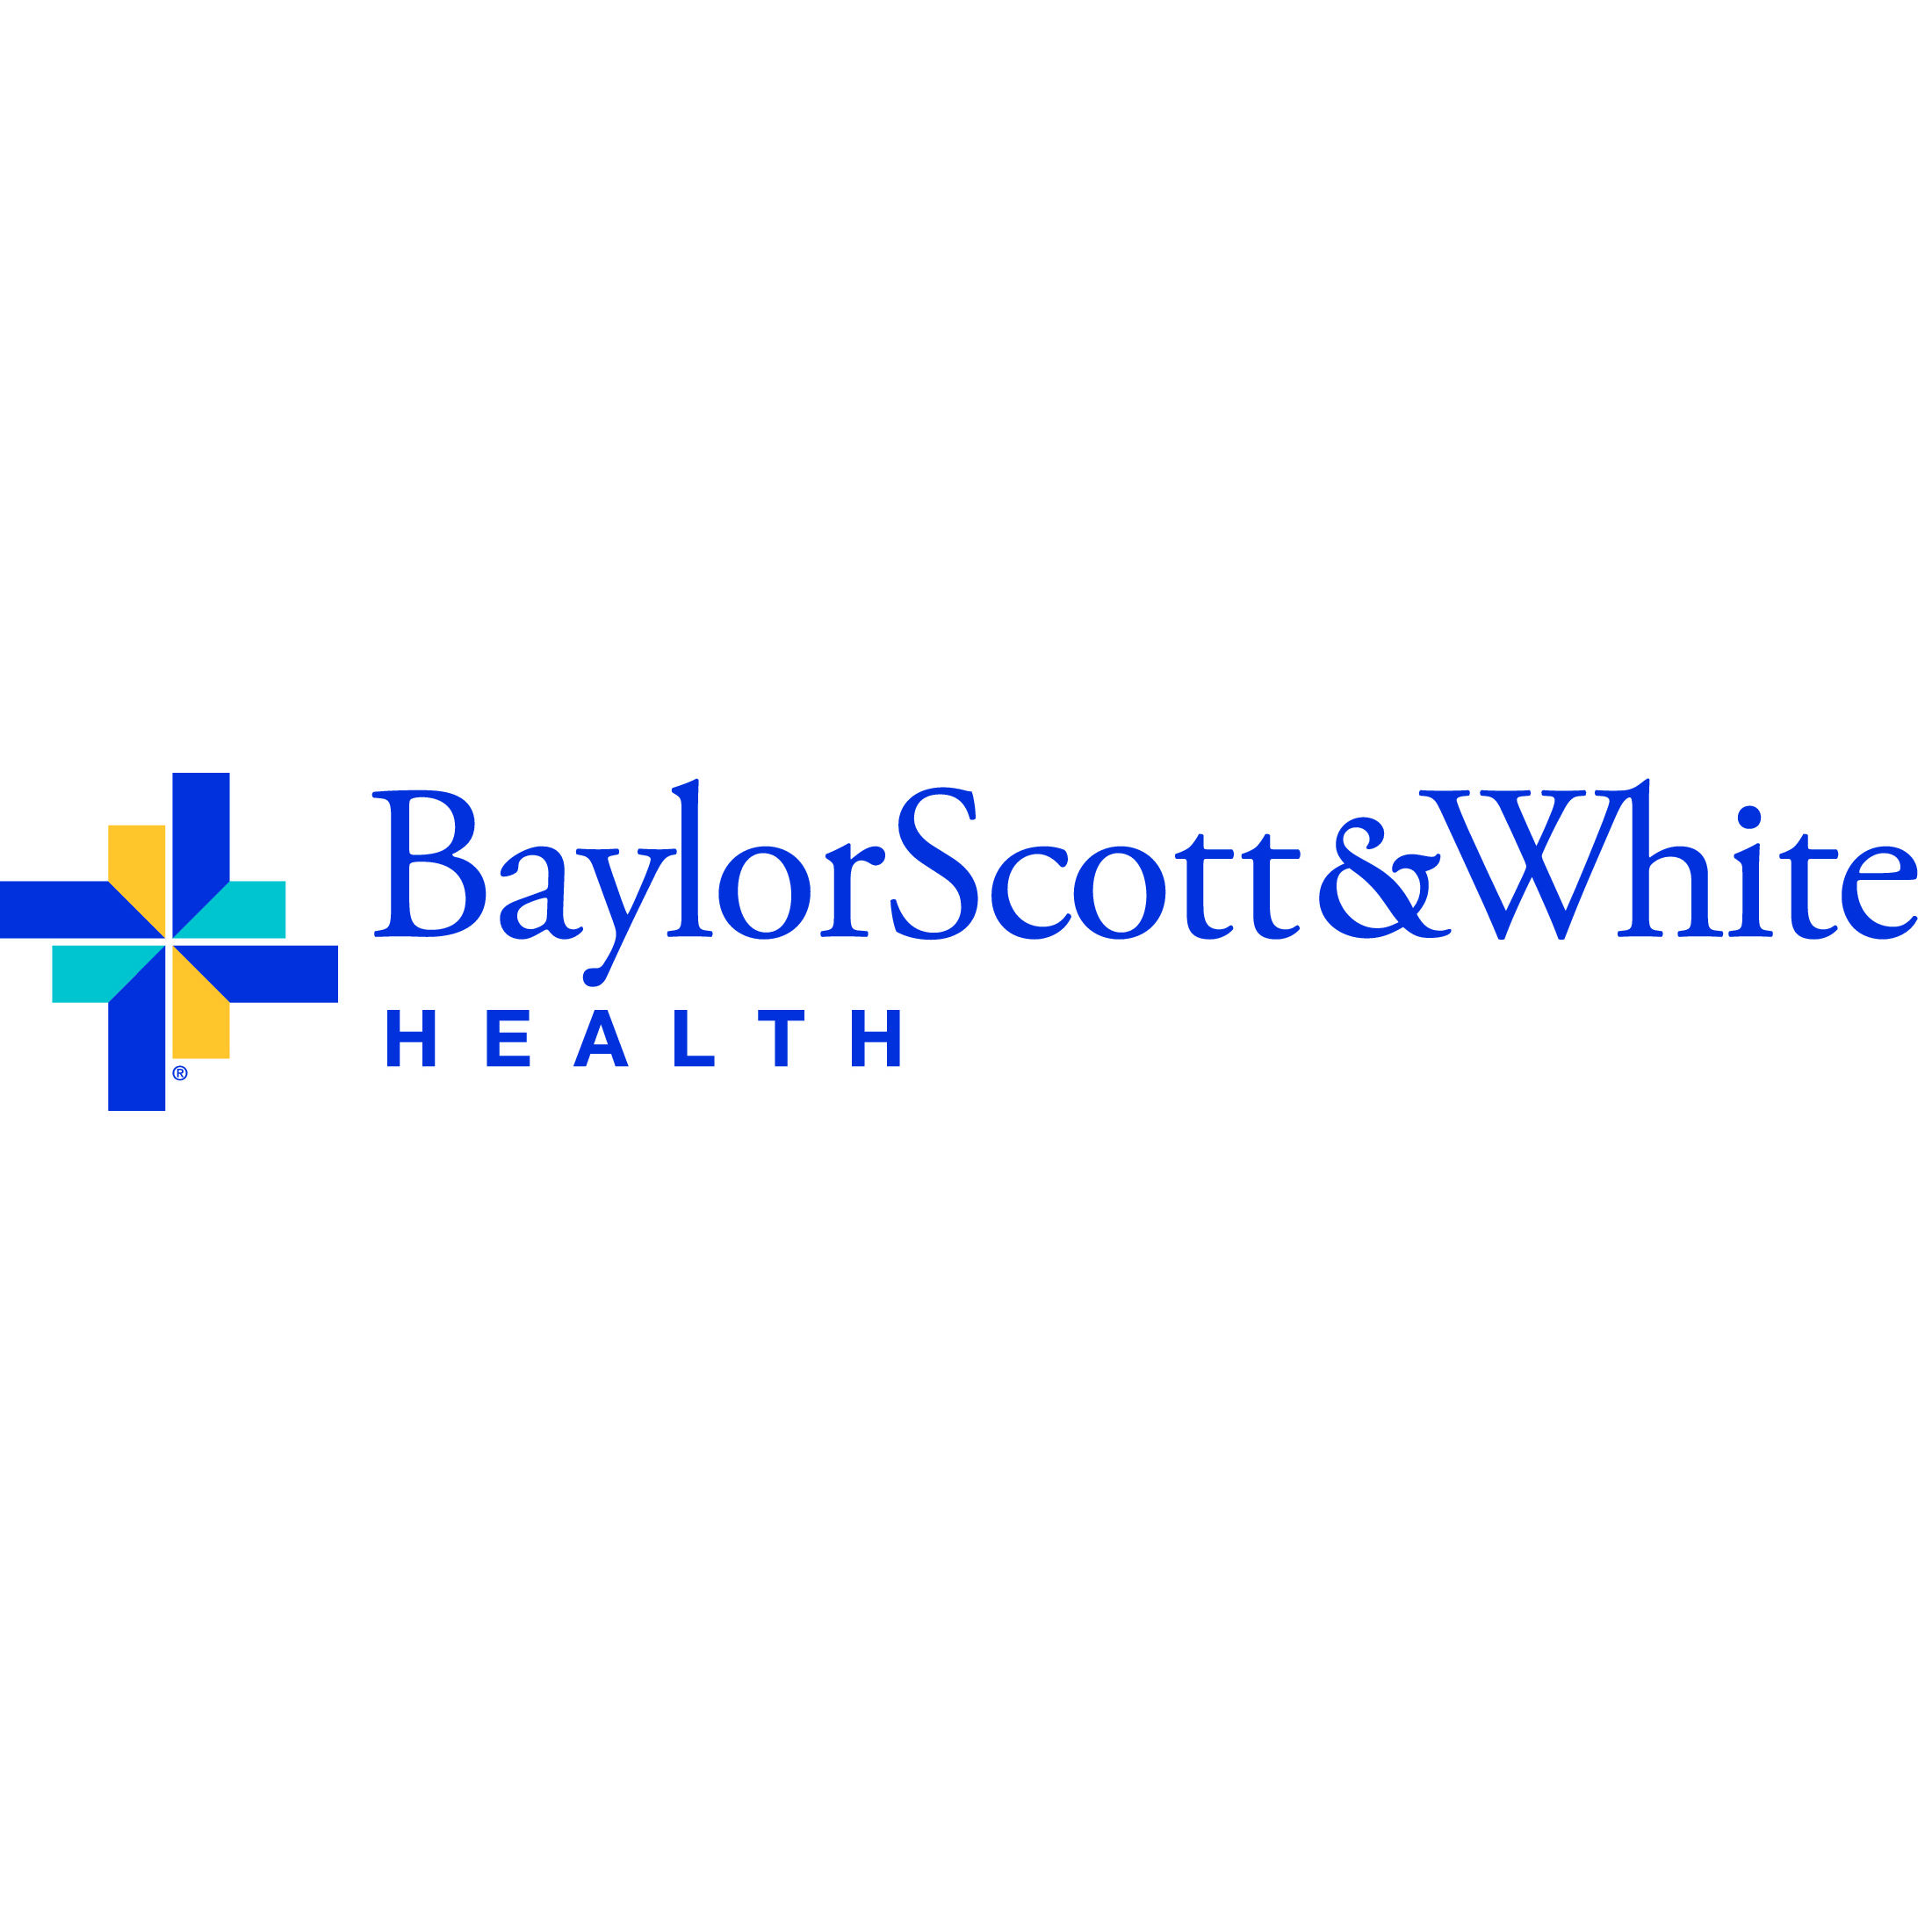 Logo for Baylor Scott & White Health